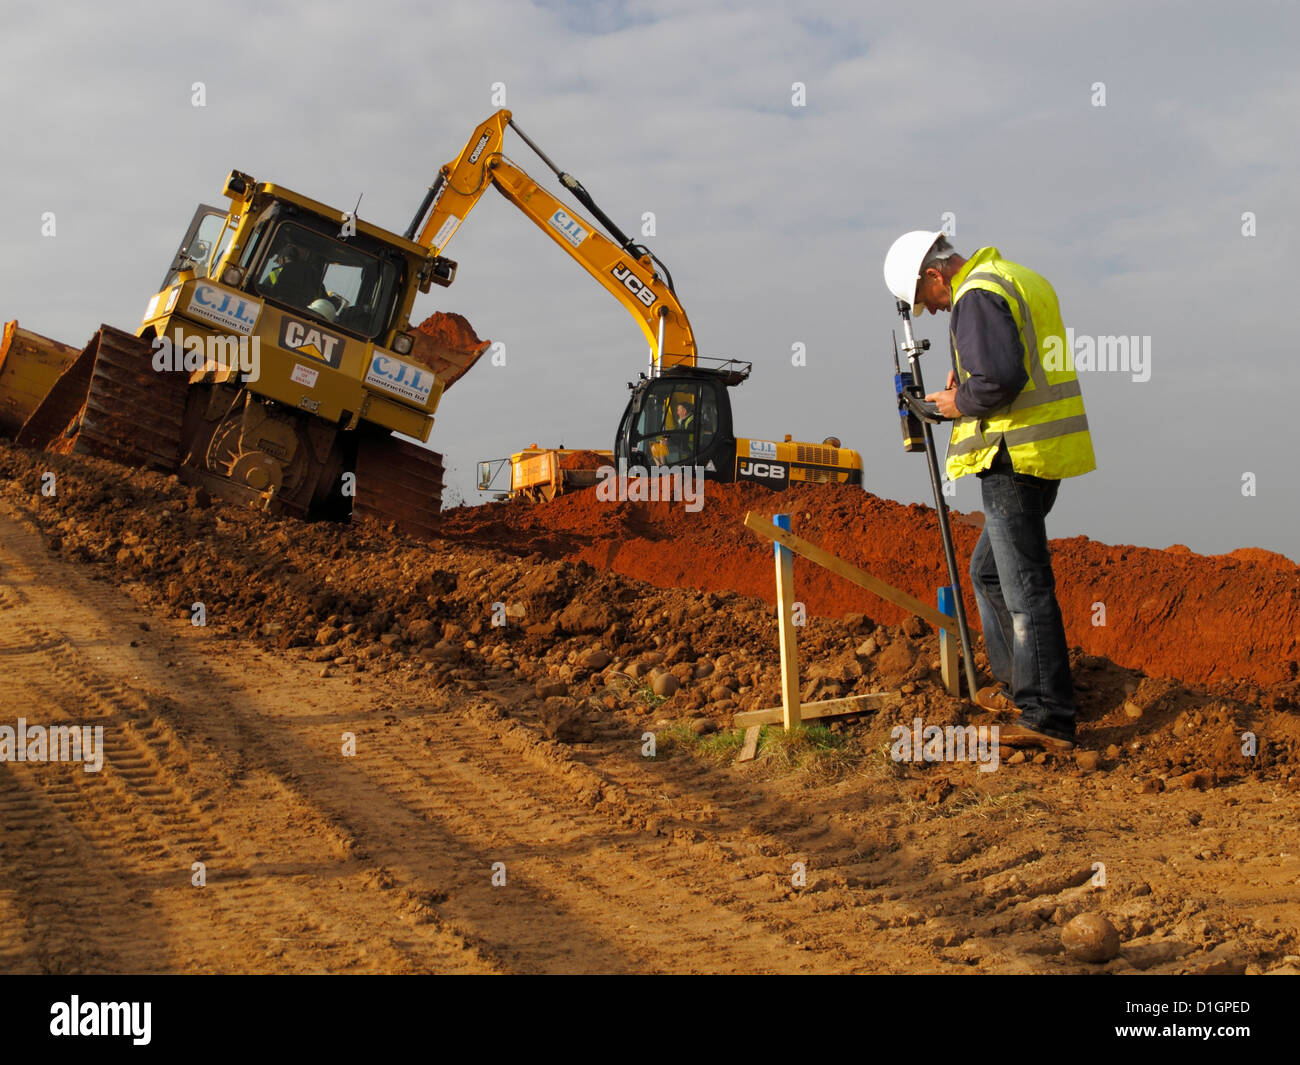 Surveyor setting out engineer checks batter rail peg on UK new road construction site wearing high vis visibility - Stock Image